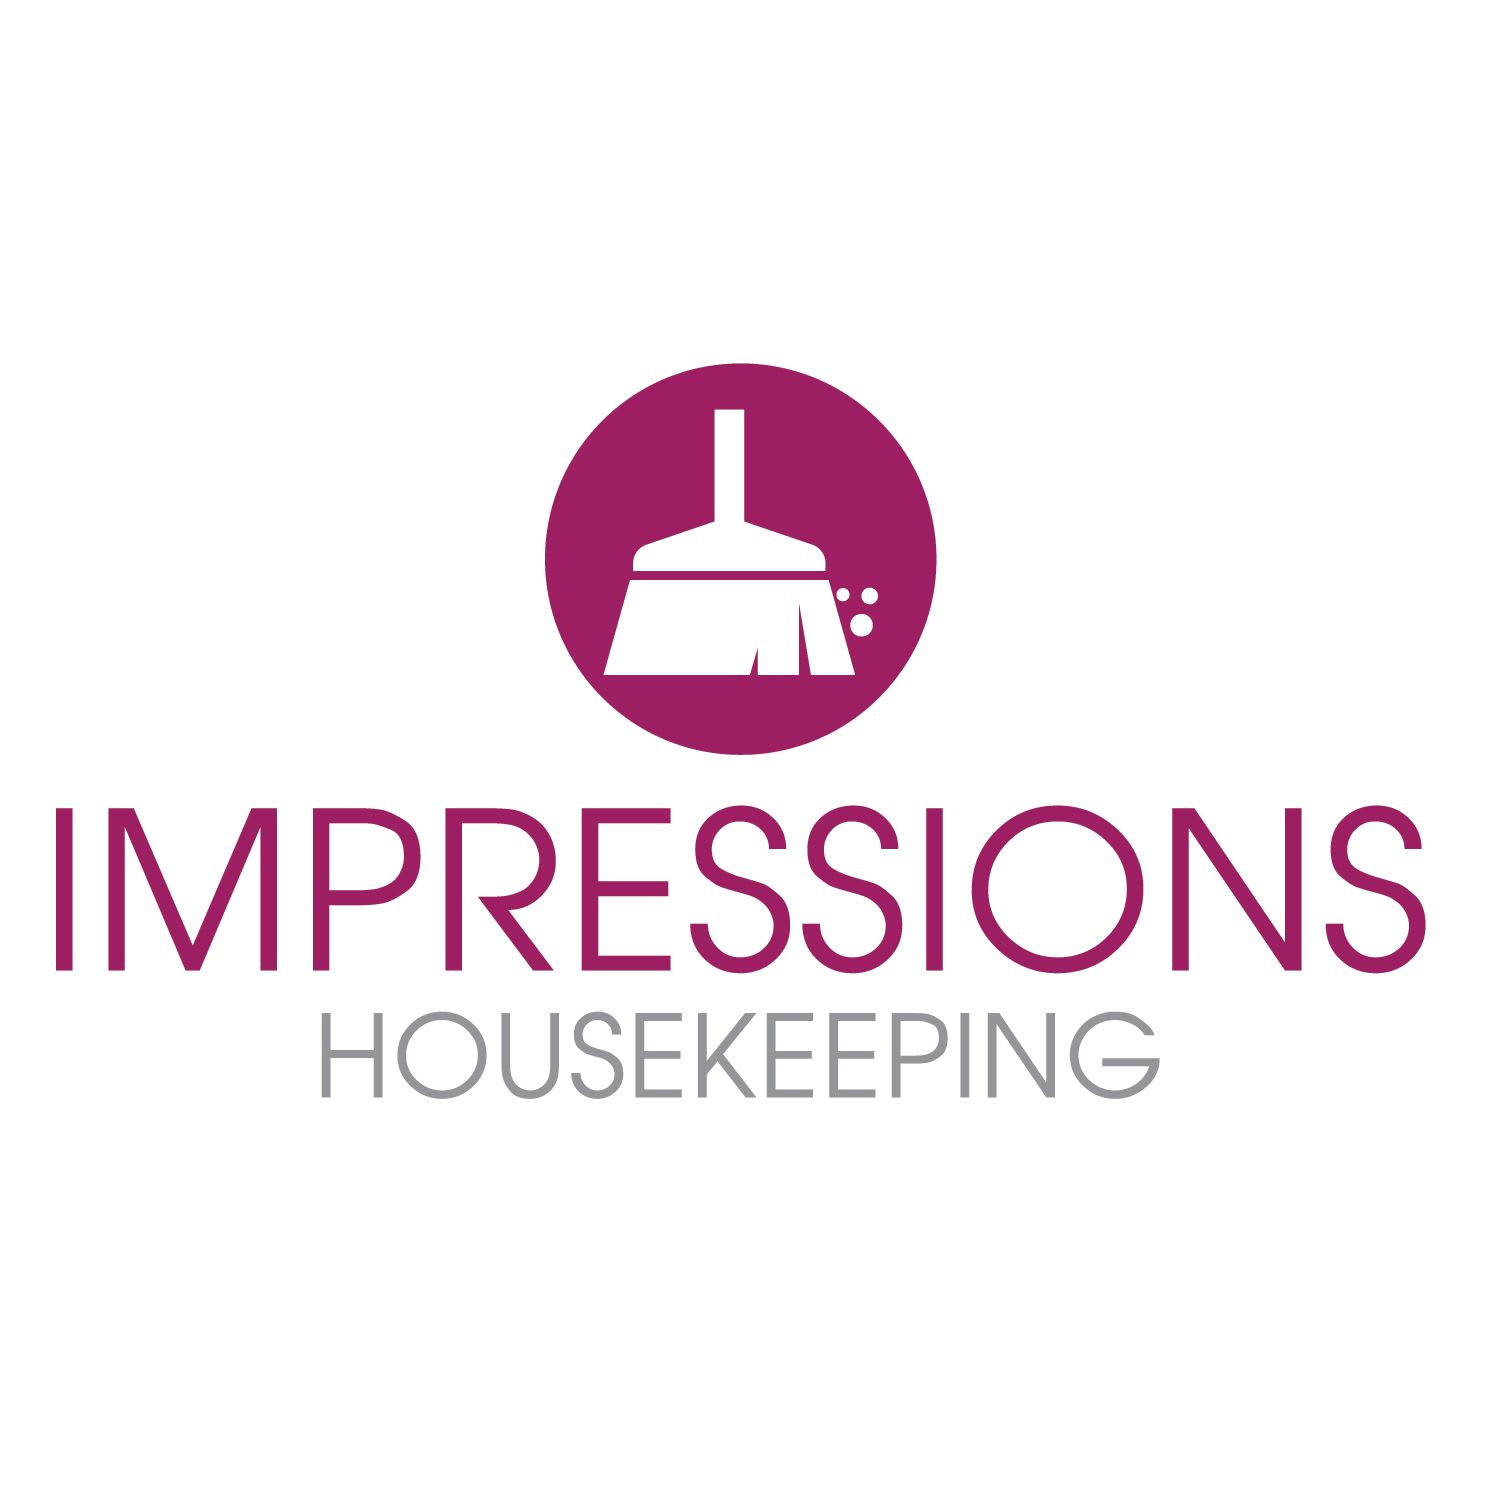 Senior living house keeping impressions in Hammond.